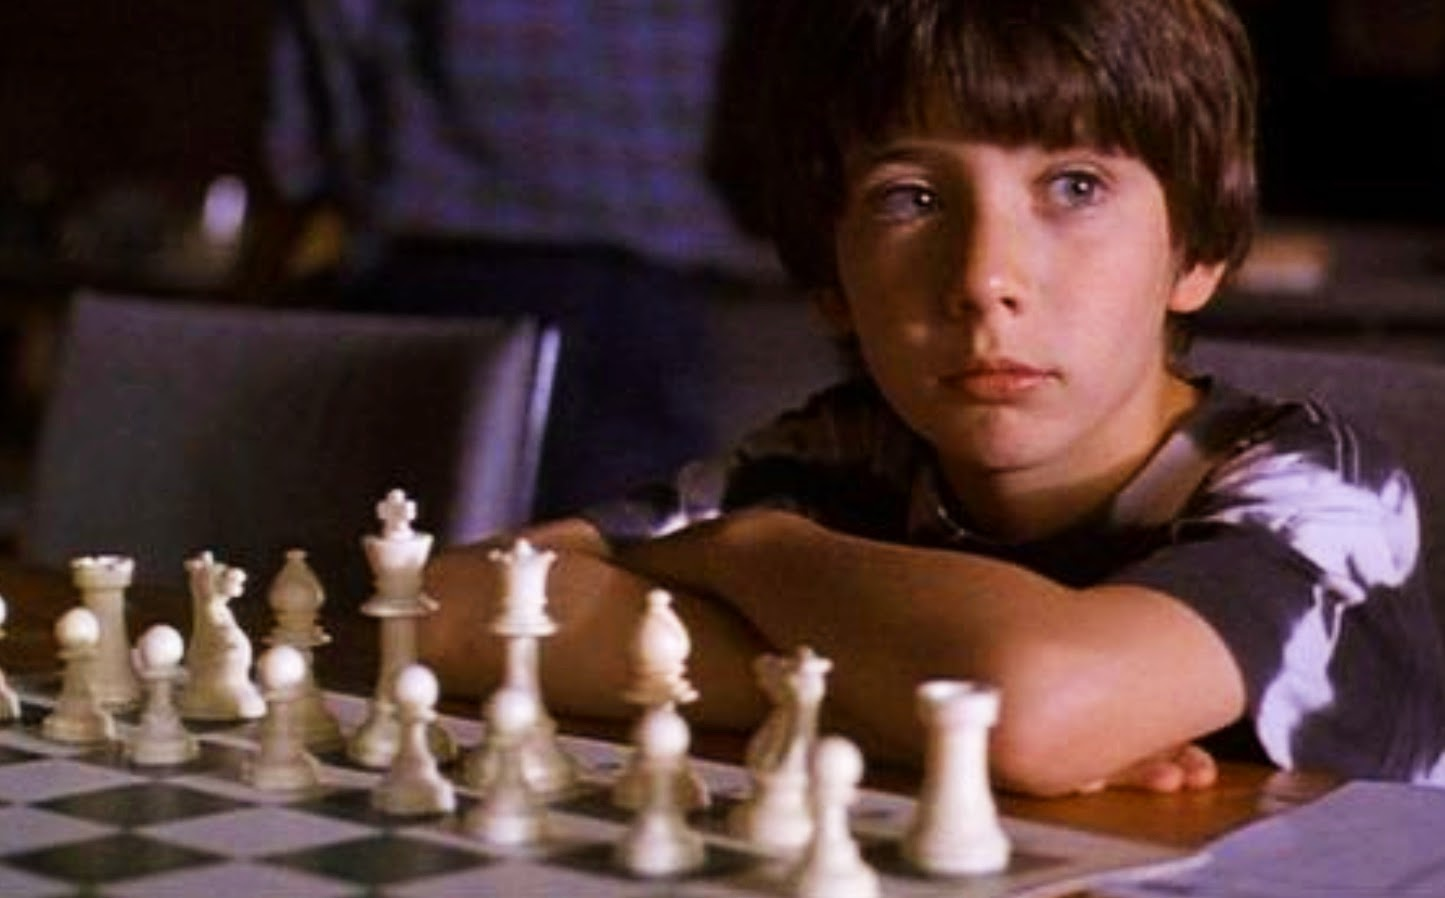 Max Pomeranc was eight when he starred as Josh Waitzkin in Searching for Bobby Fischer